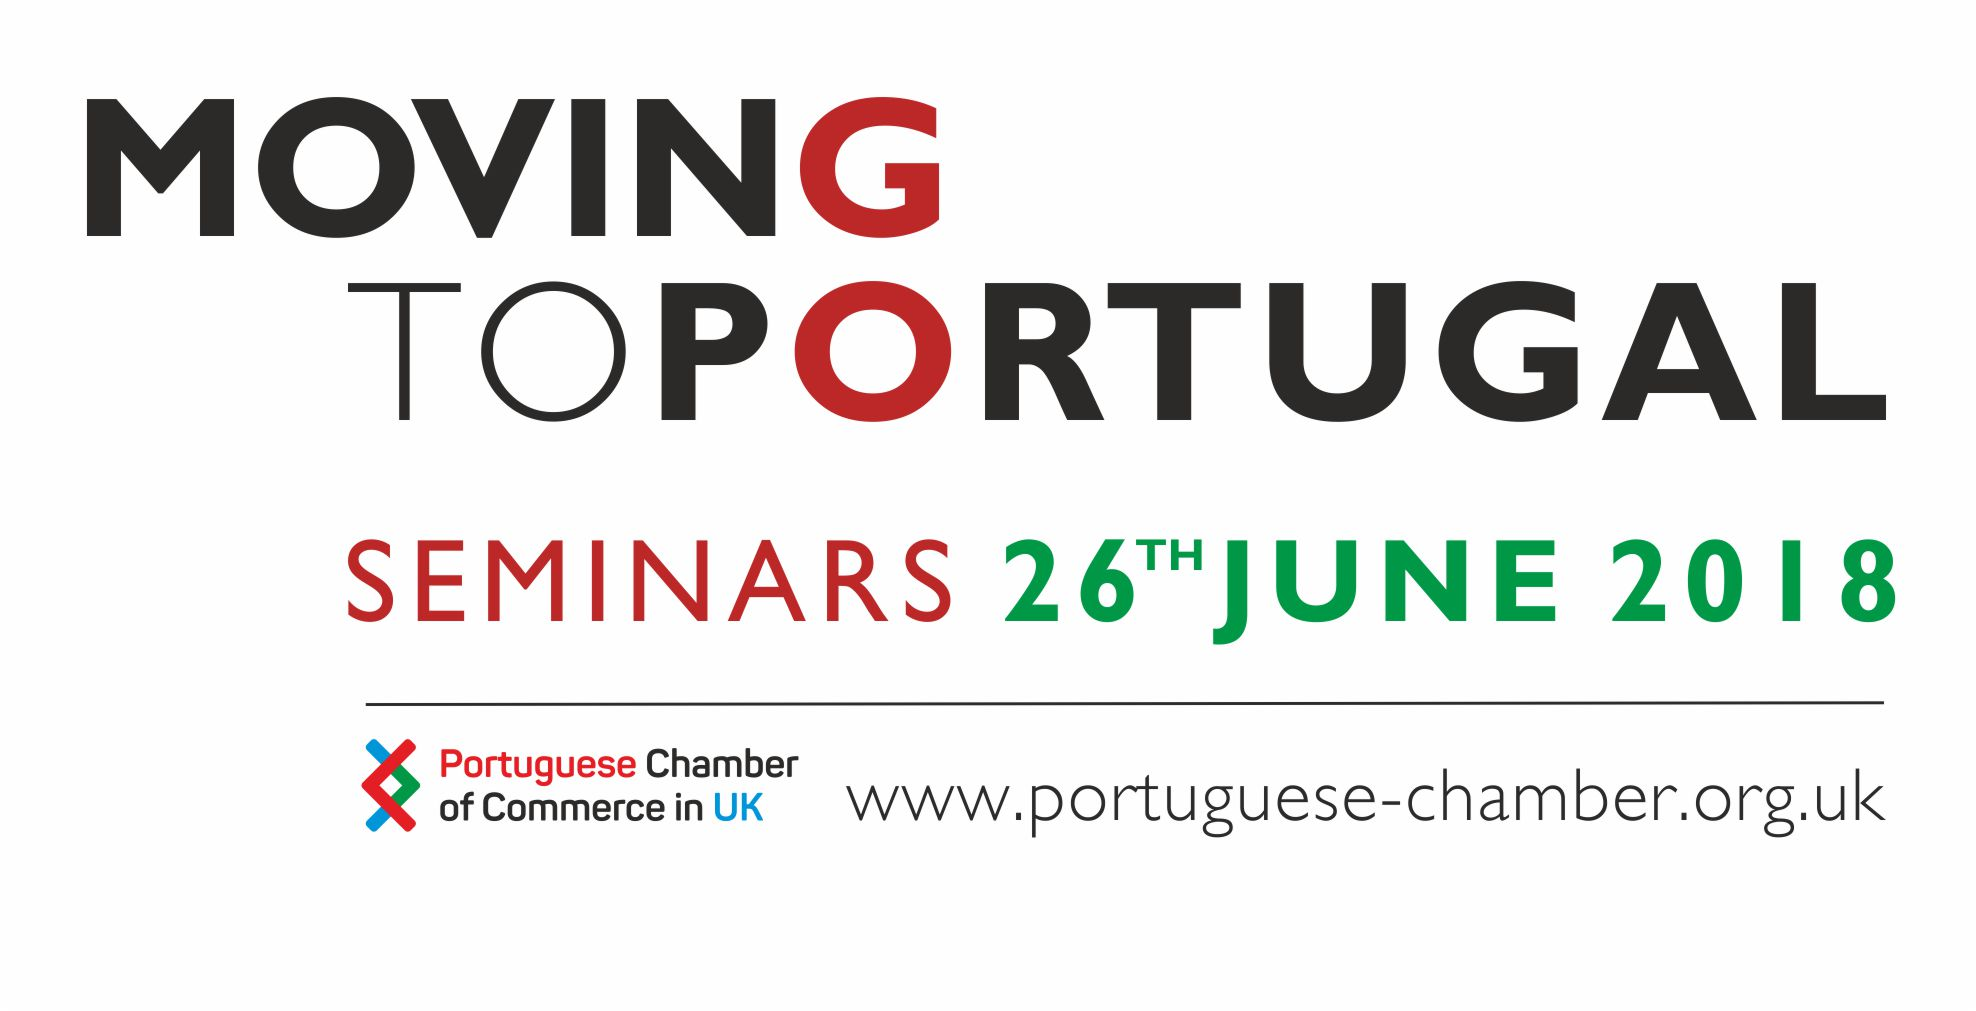 Moving to Portugal 26 June